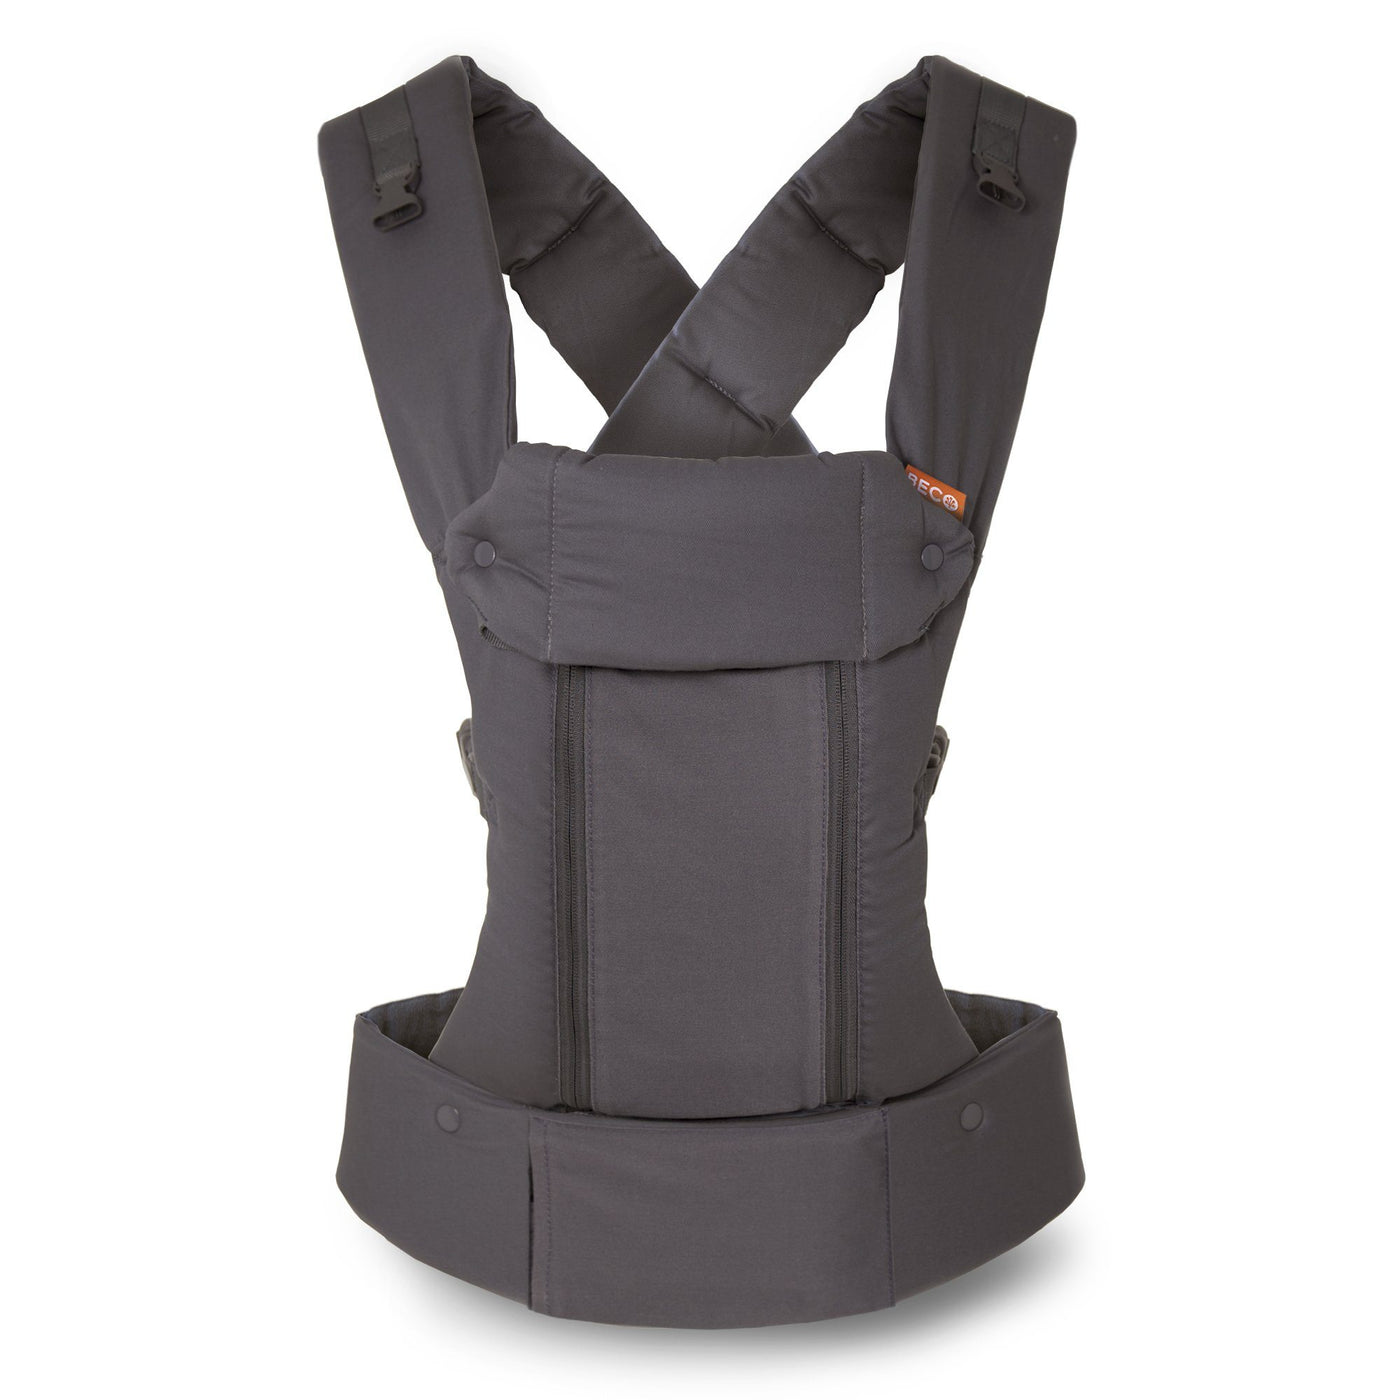 Beco Baby Carrier 8 Dark Grey - best baby carrier for dads and petite moms.